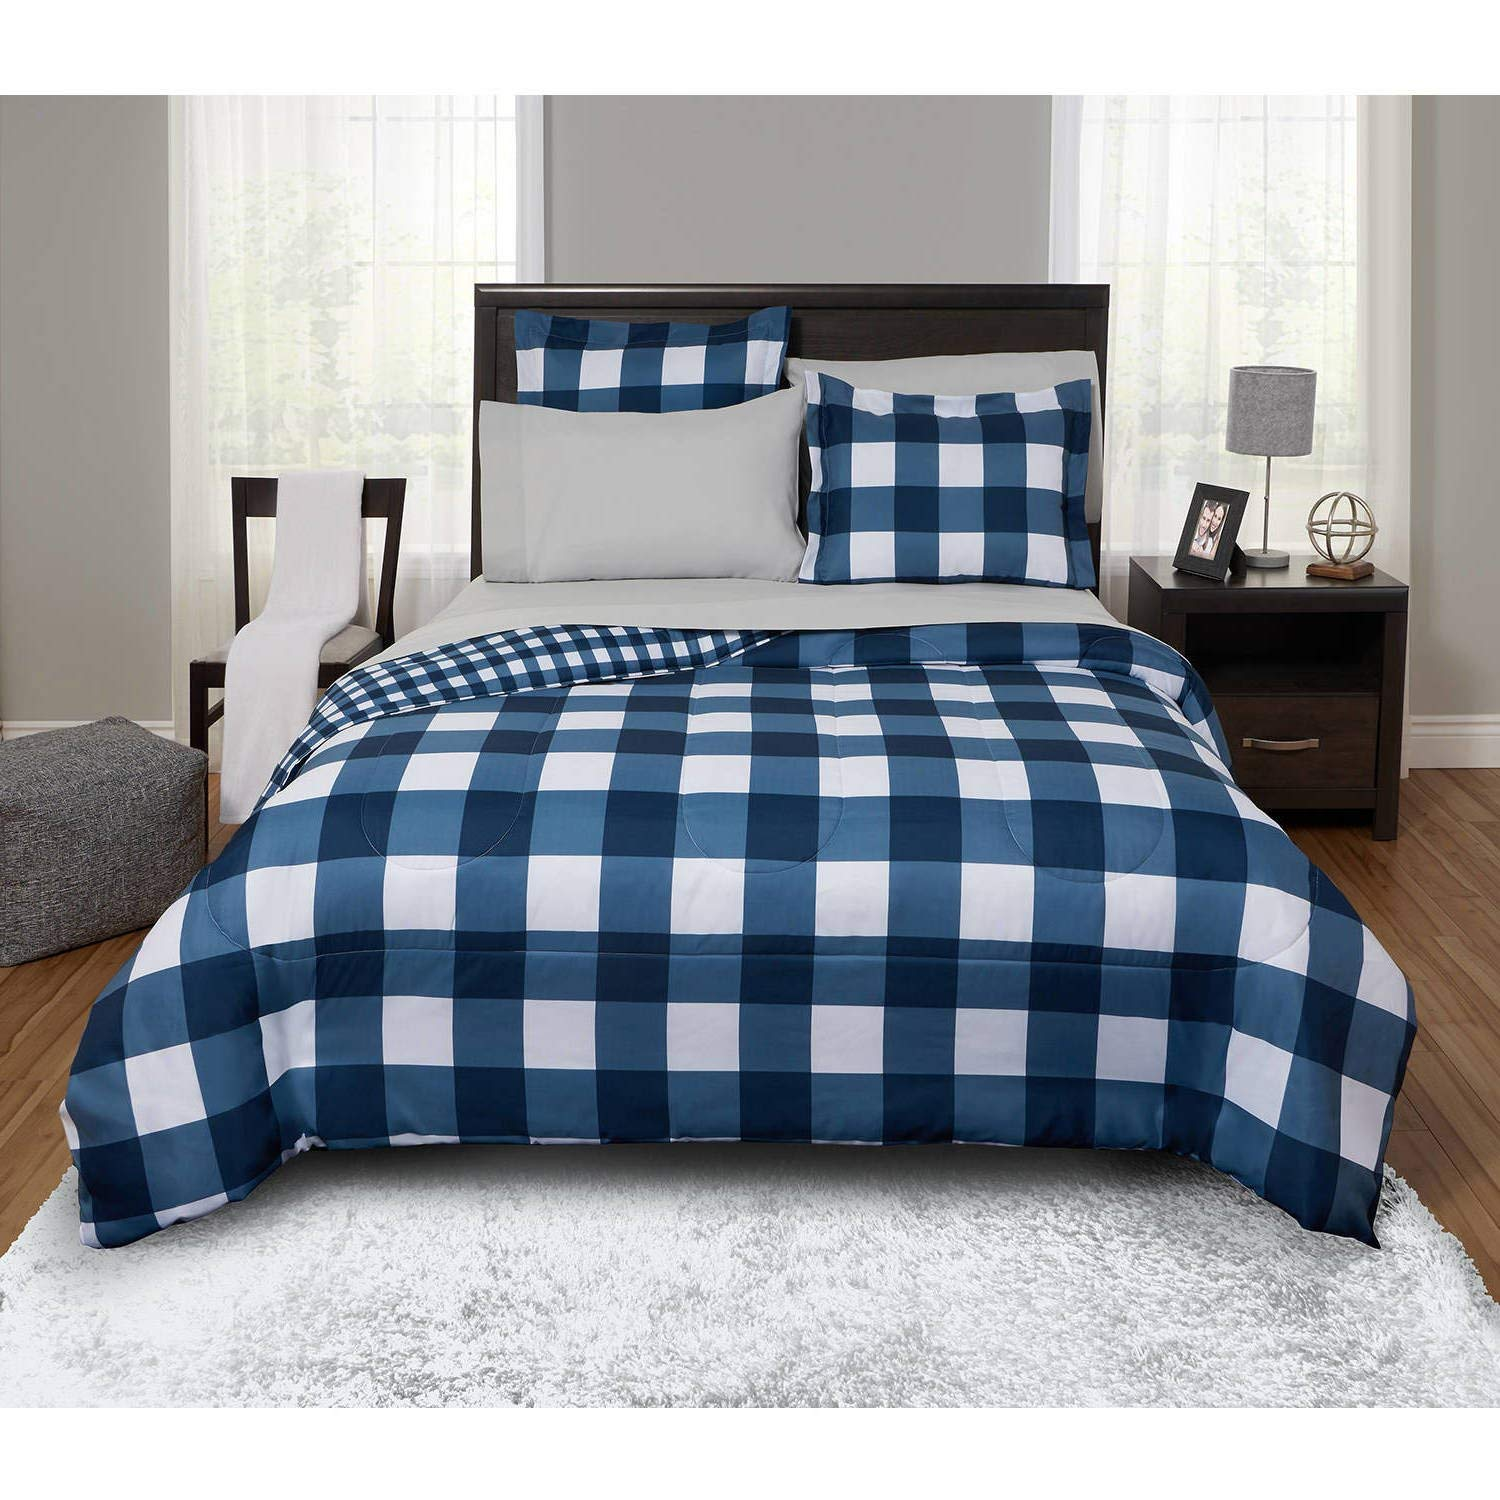 7 Piece Navy Plaid Comforter Queen Set, Blue Lodge Cabin Themed Bedding Checked Pattern Bed In Bag Madras Plaid White Tartan Checkered Lumberjack Design Glen Check Horizontal Vertical Stripe Polyester